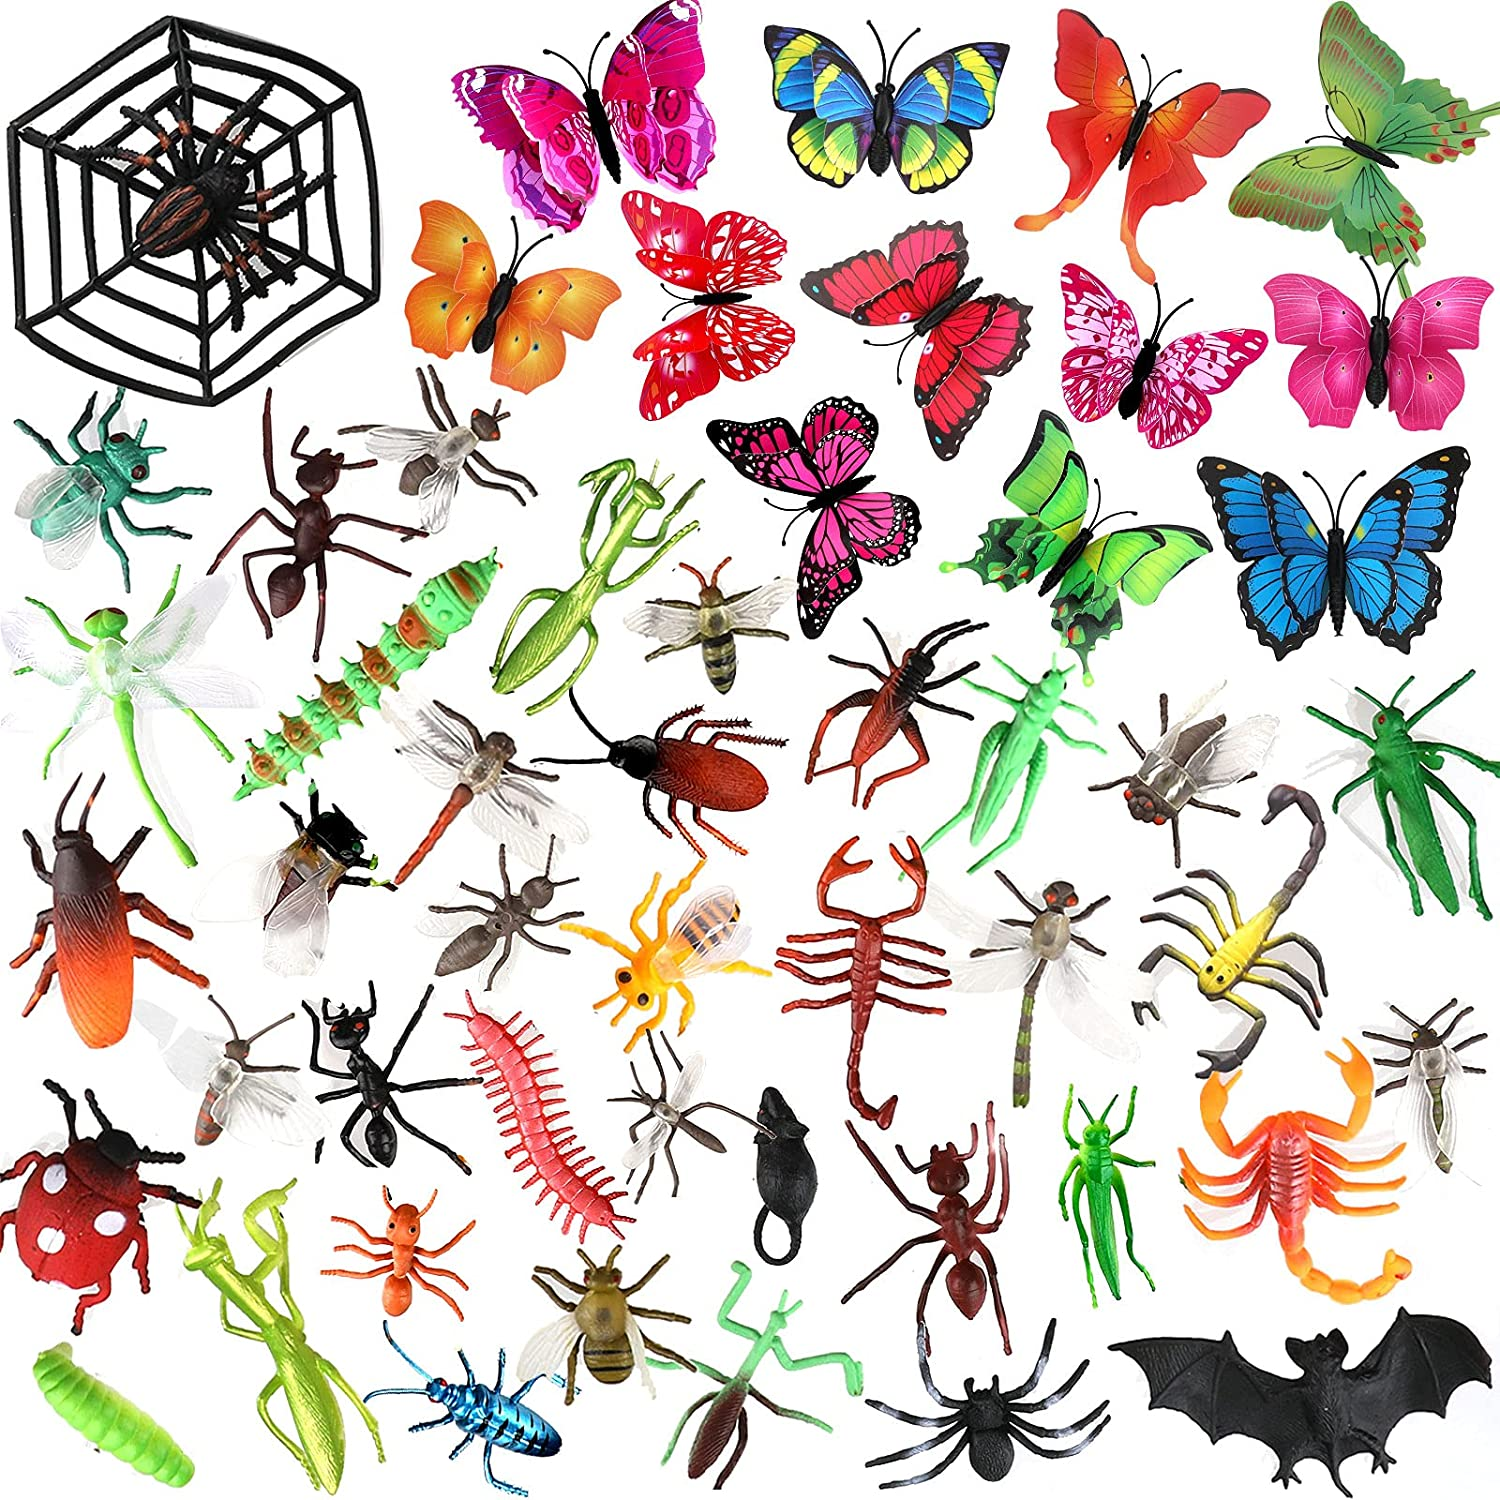 Directly managed store OOTSR 51Pcs Plastic Insects Toys Bugs High quality and Realistic